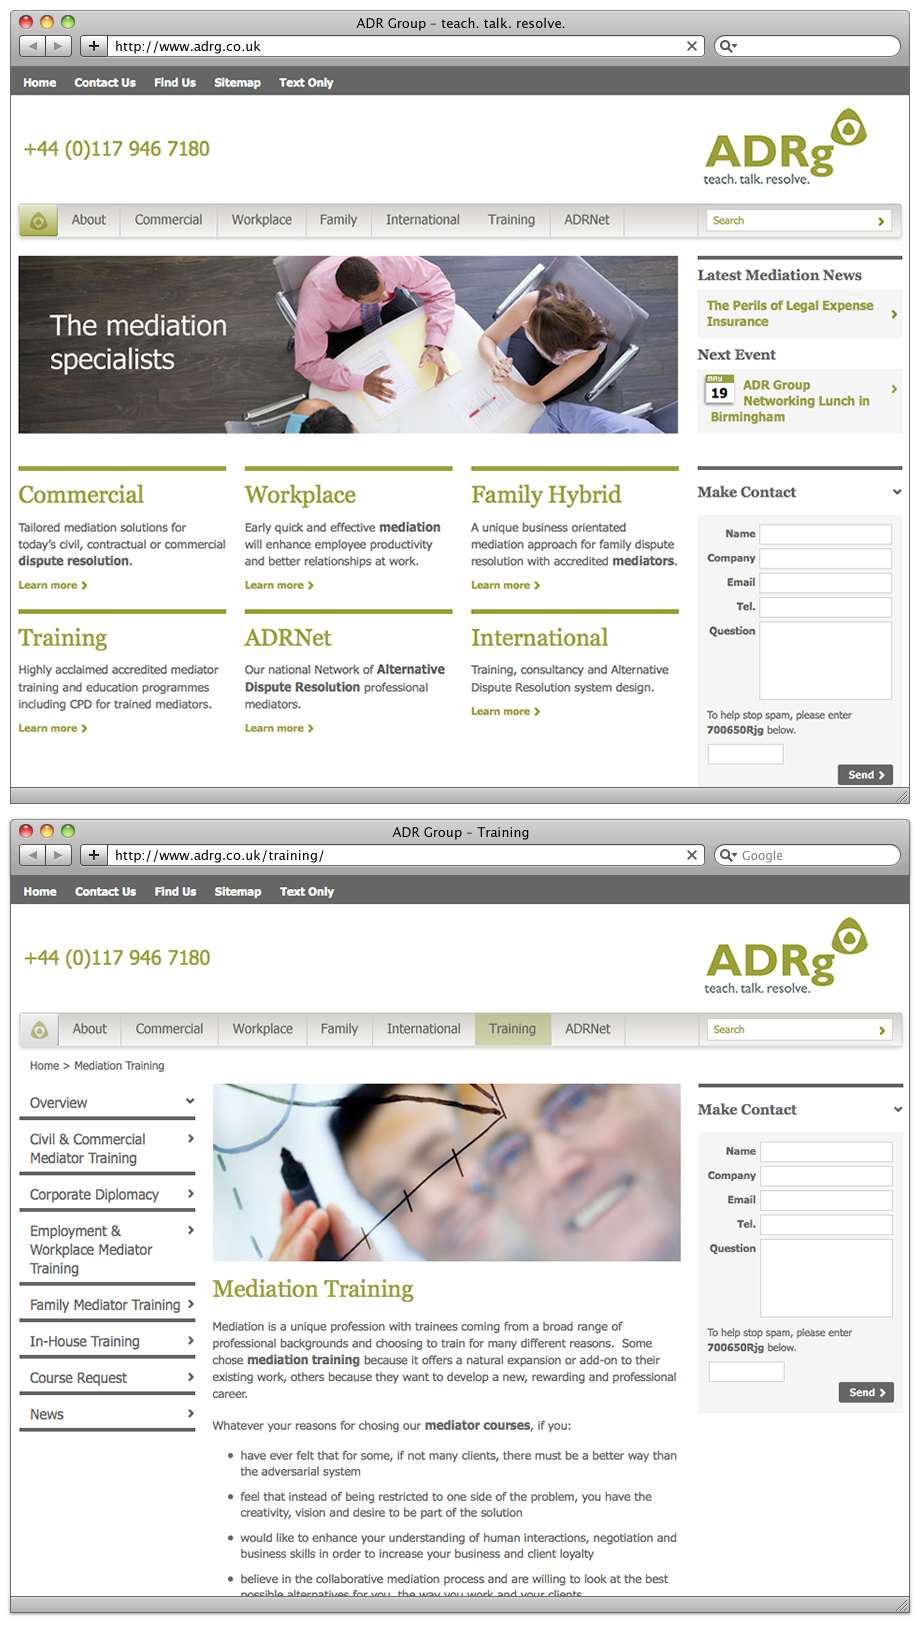 ADR Group website